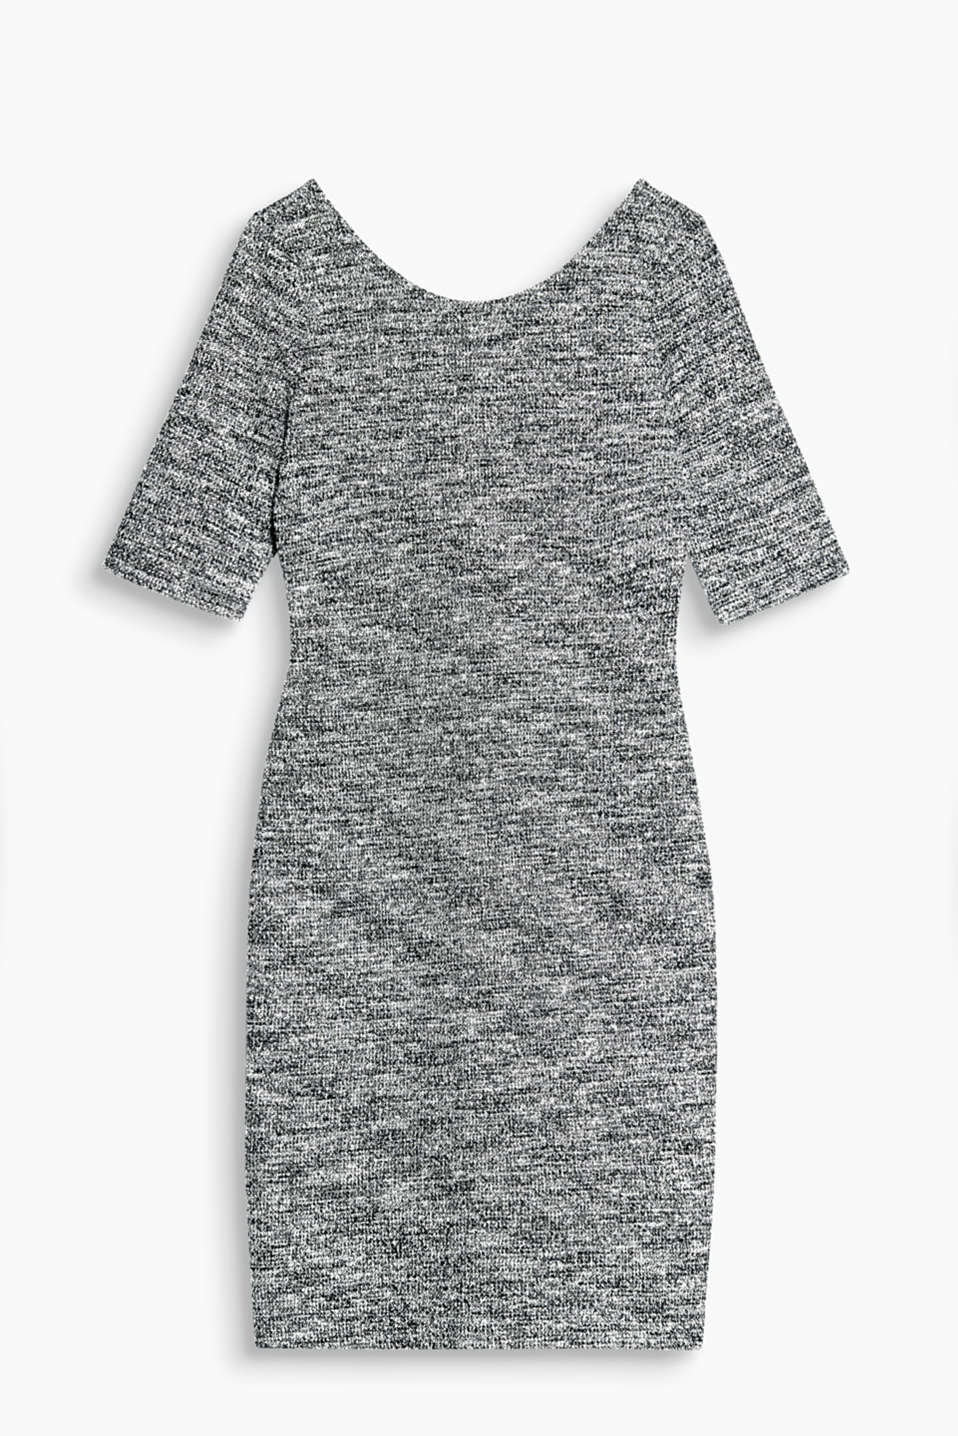 New feminine style is ultra-comfortable - just like this figure-enhancing melange dress in textured jersey!